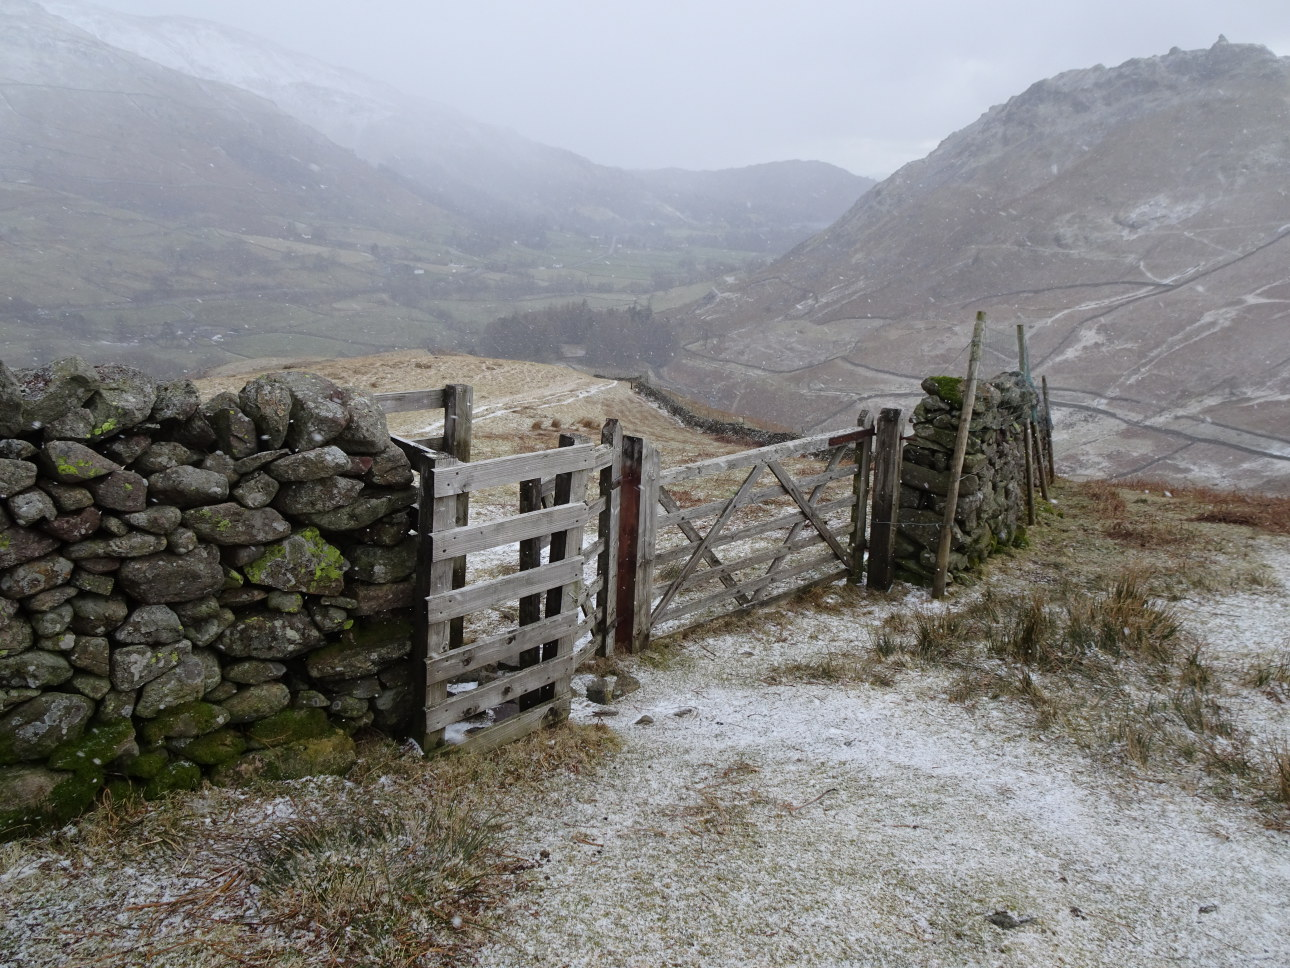 Relief to be back at the fell-gate with an easing in grade and less hidden ice to deal with. Taken at 3:16 pm.